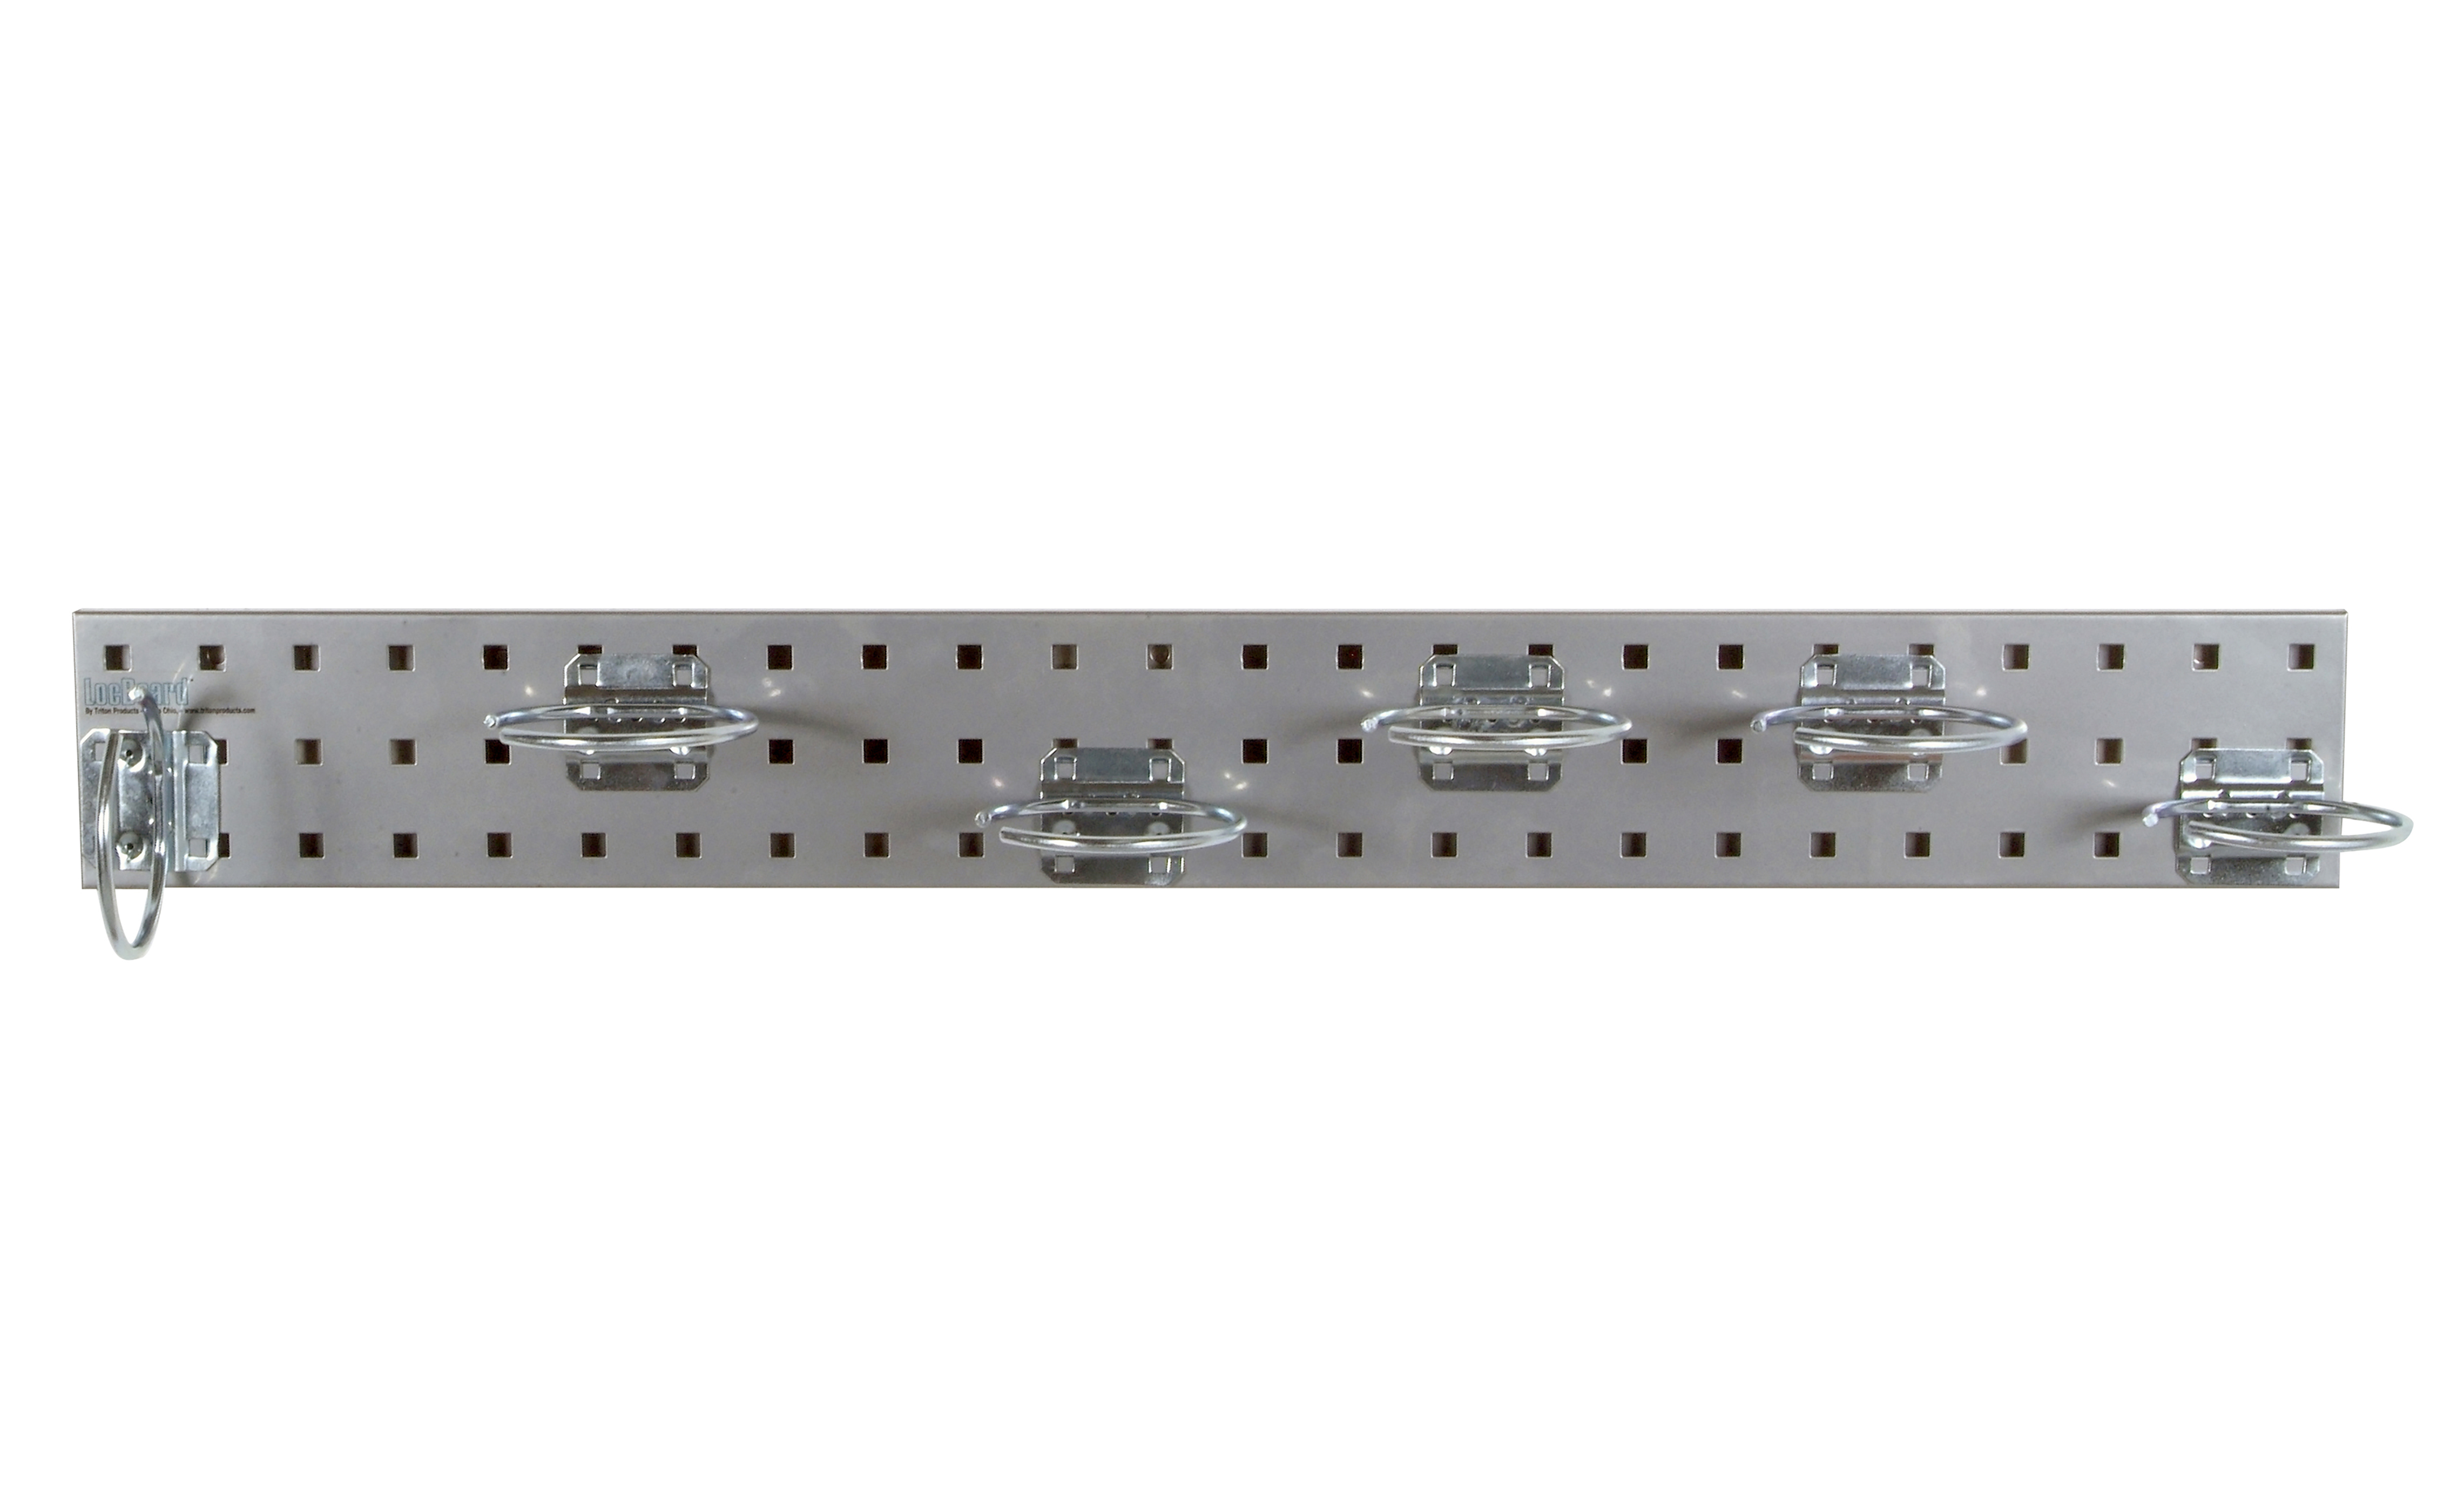 Silver Pneumatic Tool Pegboard Kit with (1) 36 In. x 4.5 In. Steel Square Hole Pegboard and 6 pc LocHook Assortment